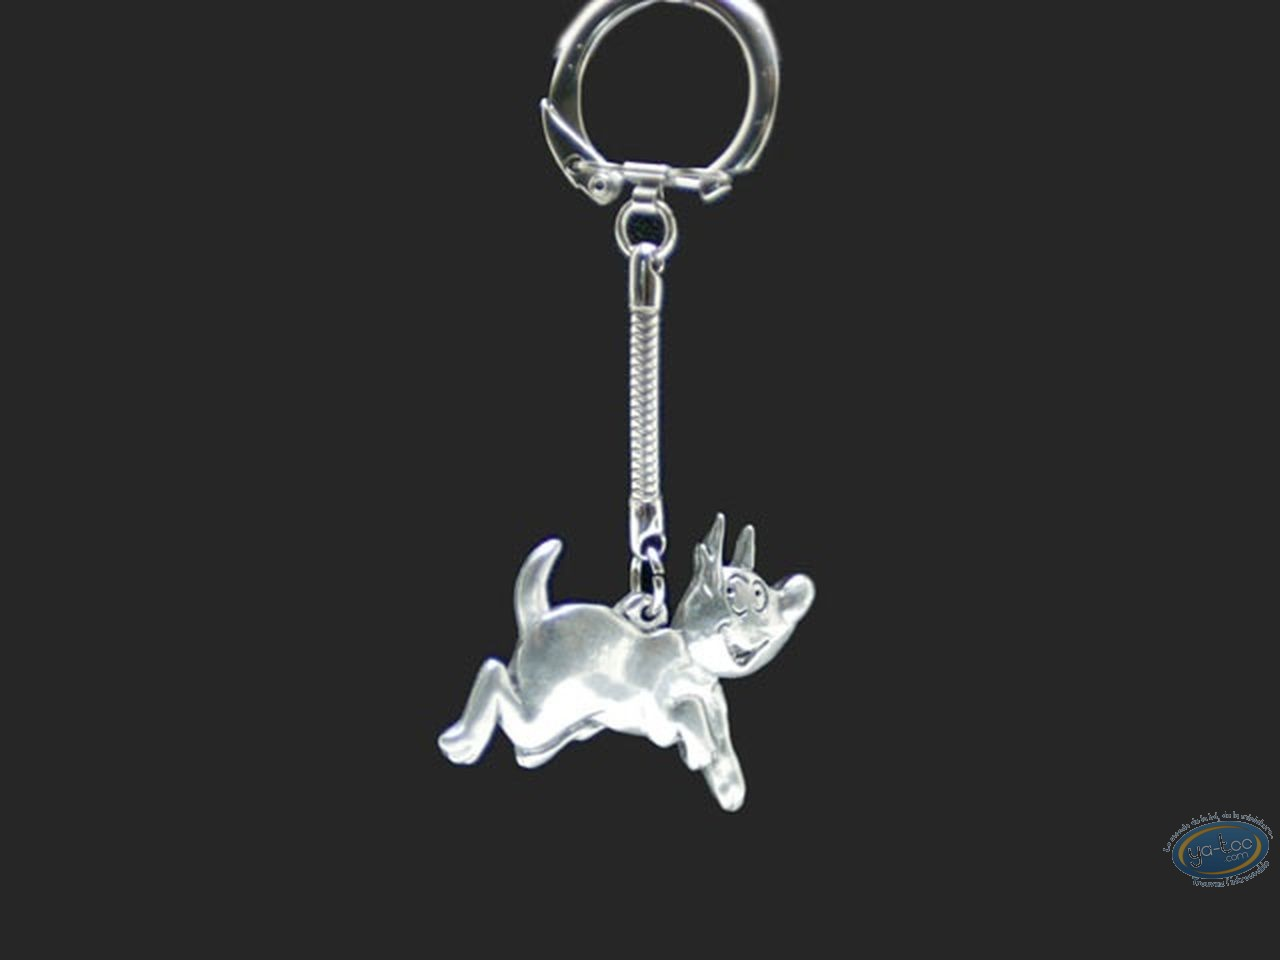 Keyring, Sac à Puces : Dog